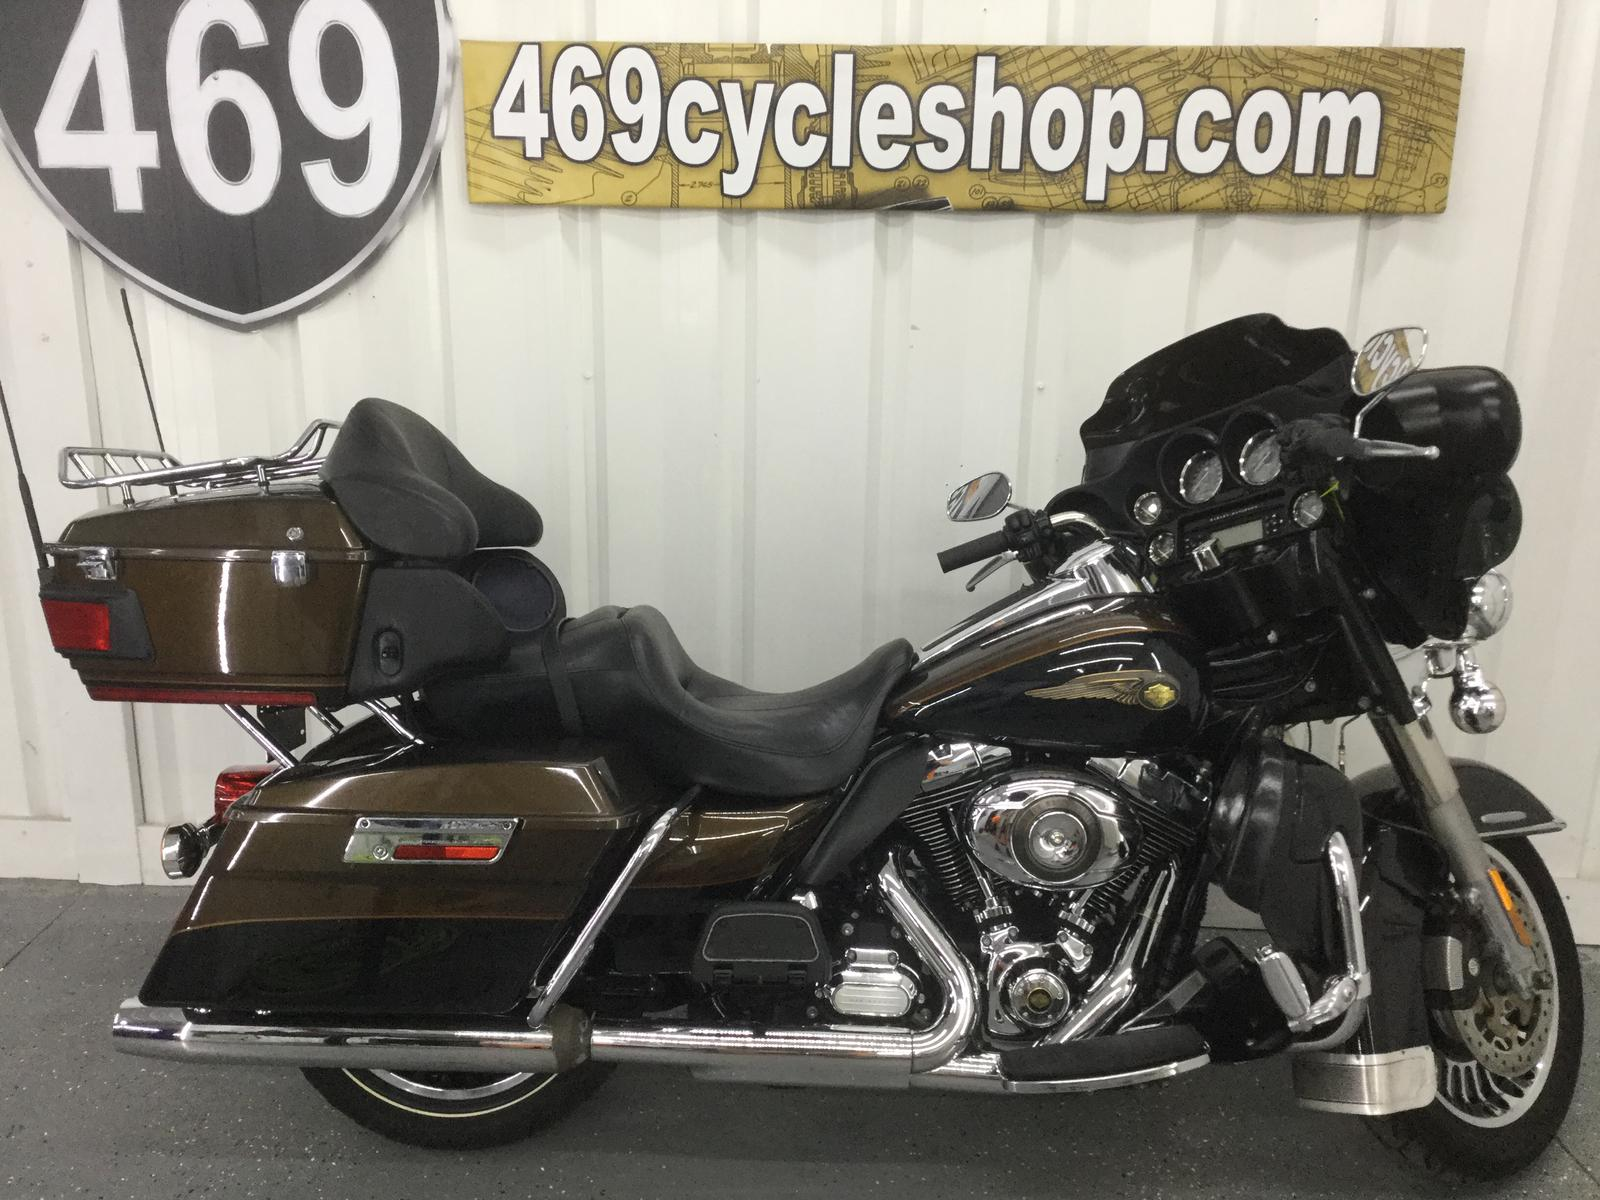 2013 Harley Davidson Flhtk Electra Glide Ultra Limited For Sale In Rear Fender Wiring Harness New Haven 469 Cycle Shop 260 749 0469